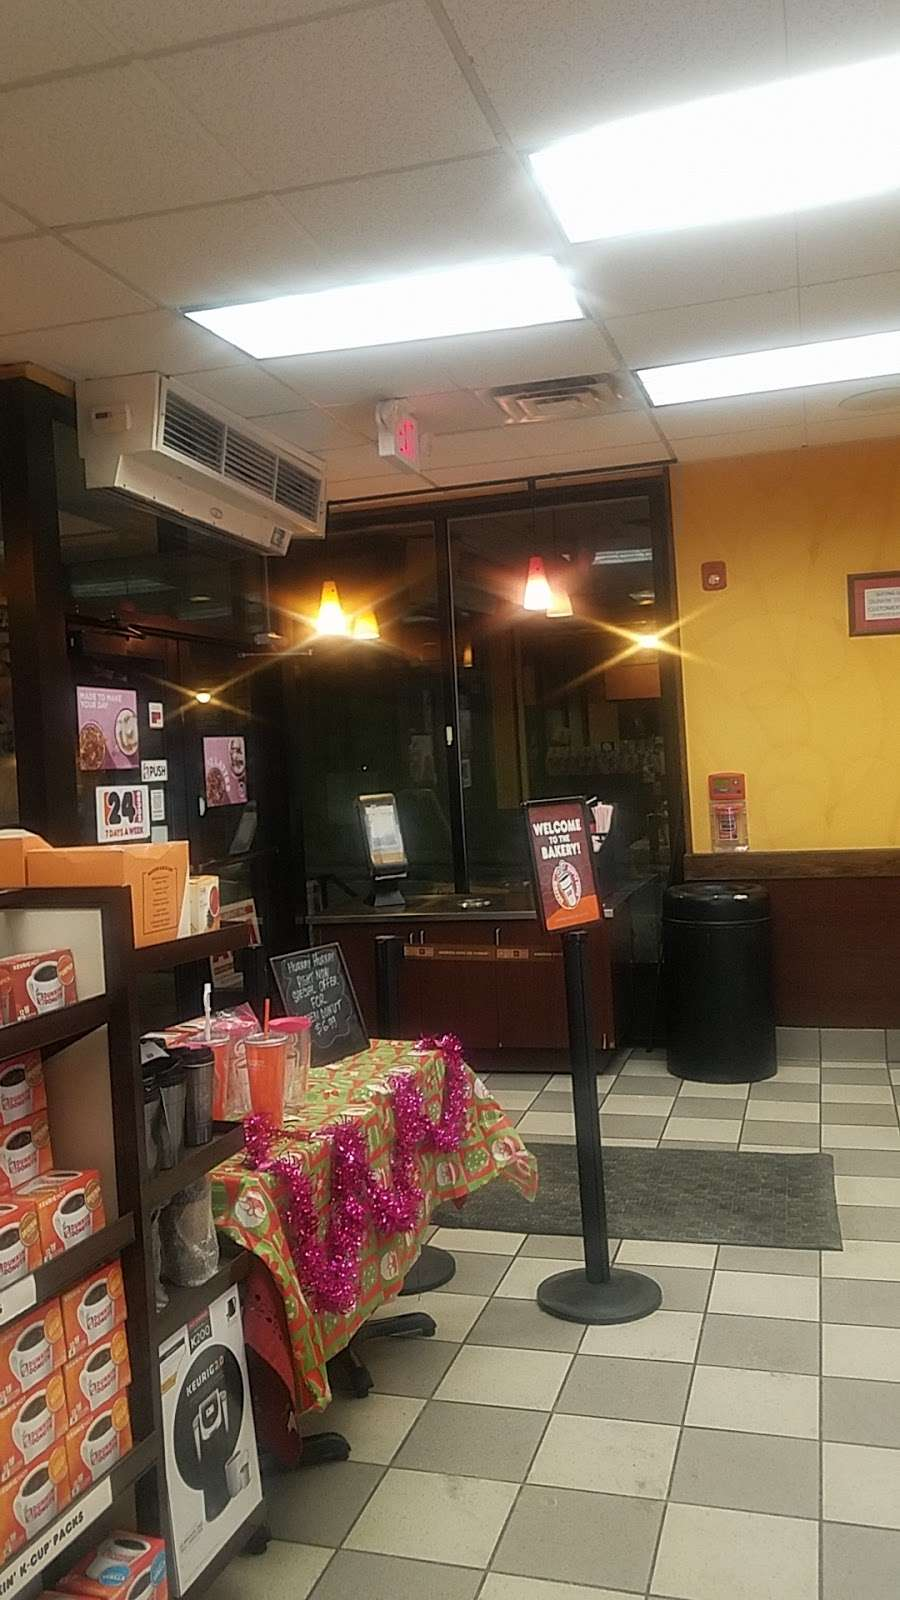 Dunkin Donuts - cafe  | Photo 1 of 10 | Address: 850 Bronx River Rd, Yonkers, NY 10708, USA | Phone: (914) 237-5921